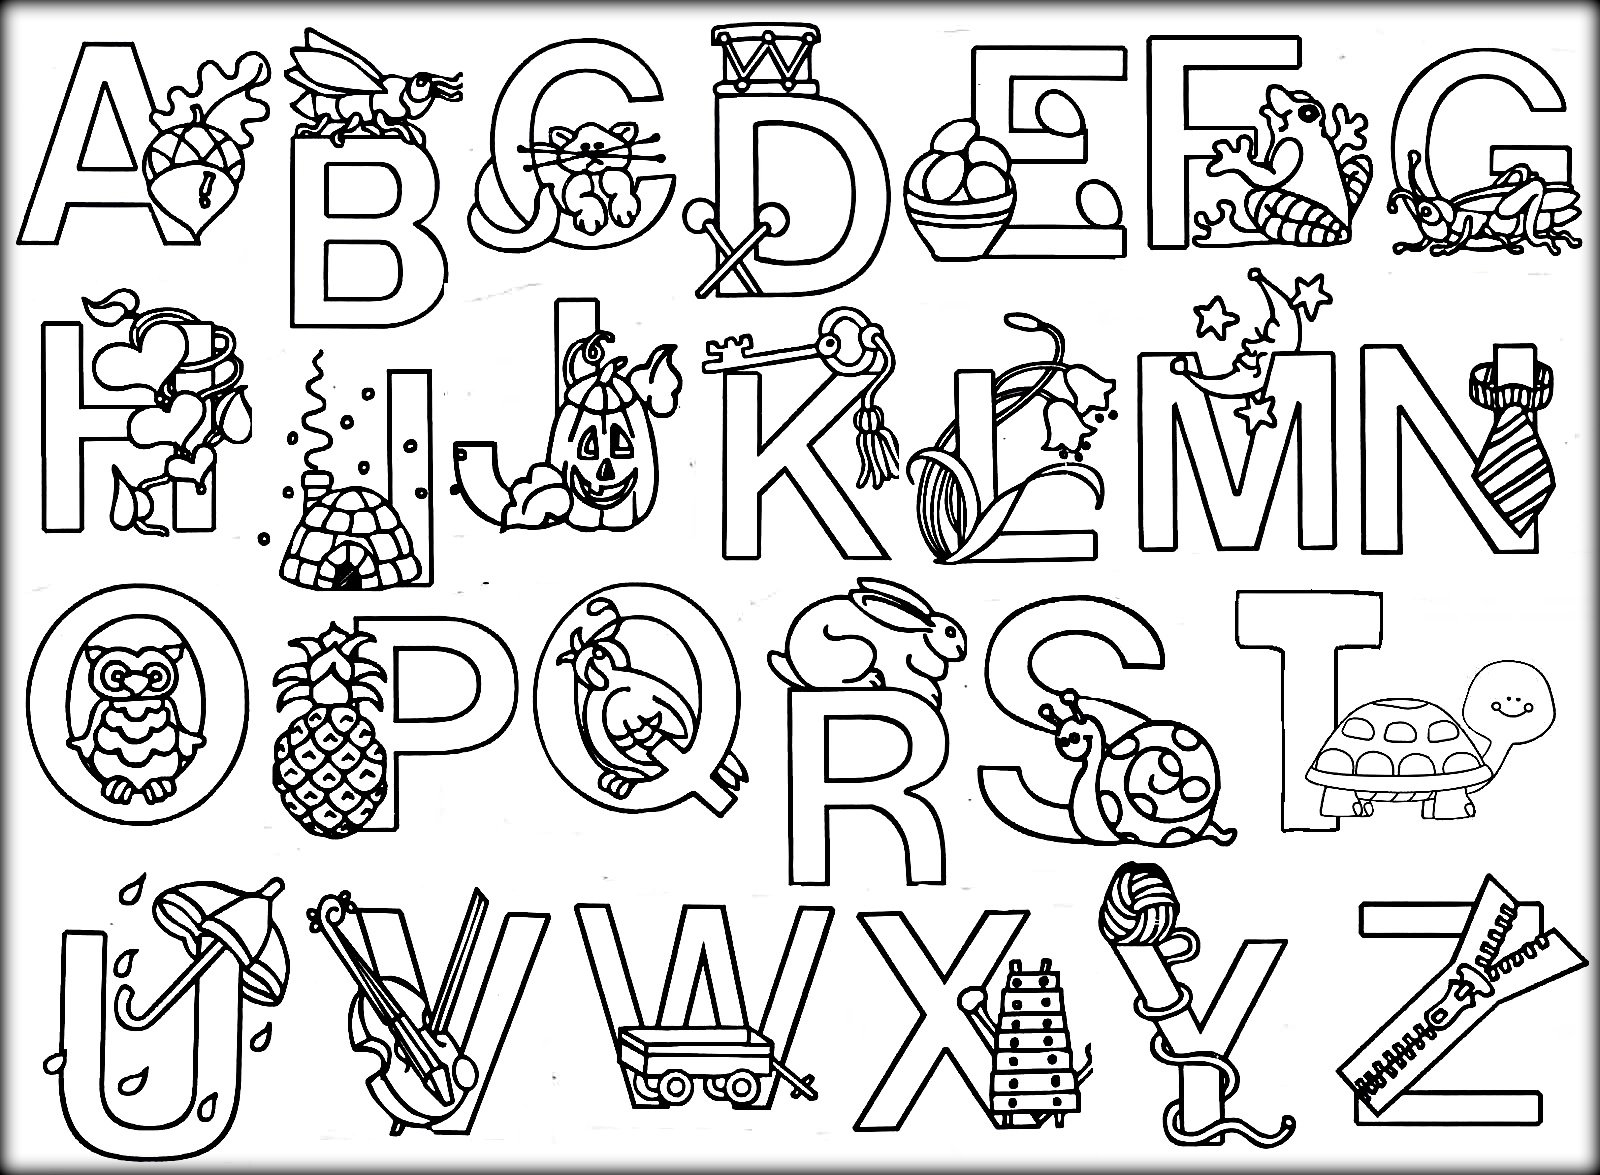 Printable Animal Alphabet Coloring Pages Color Zini And